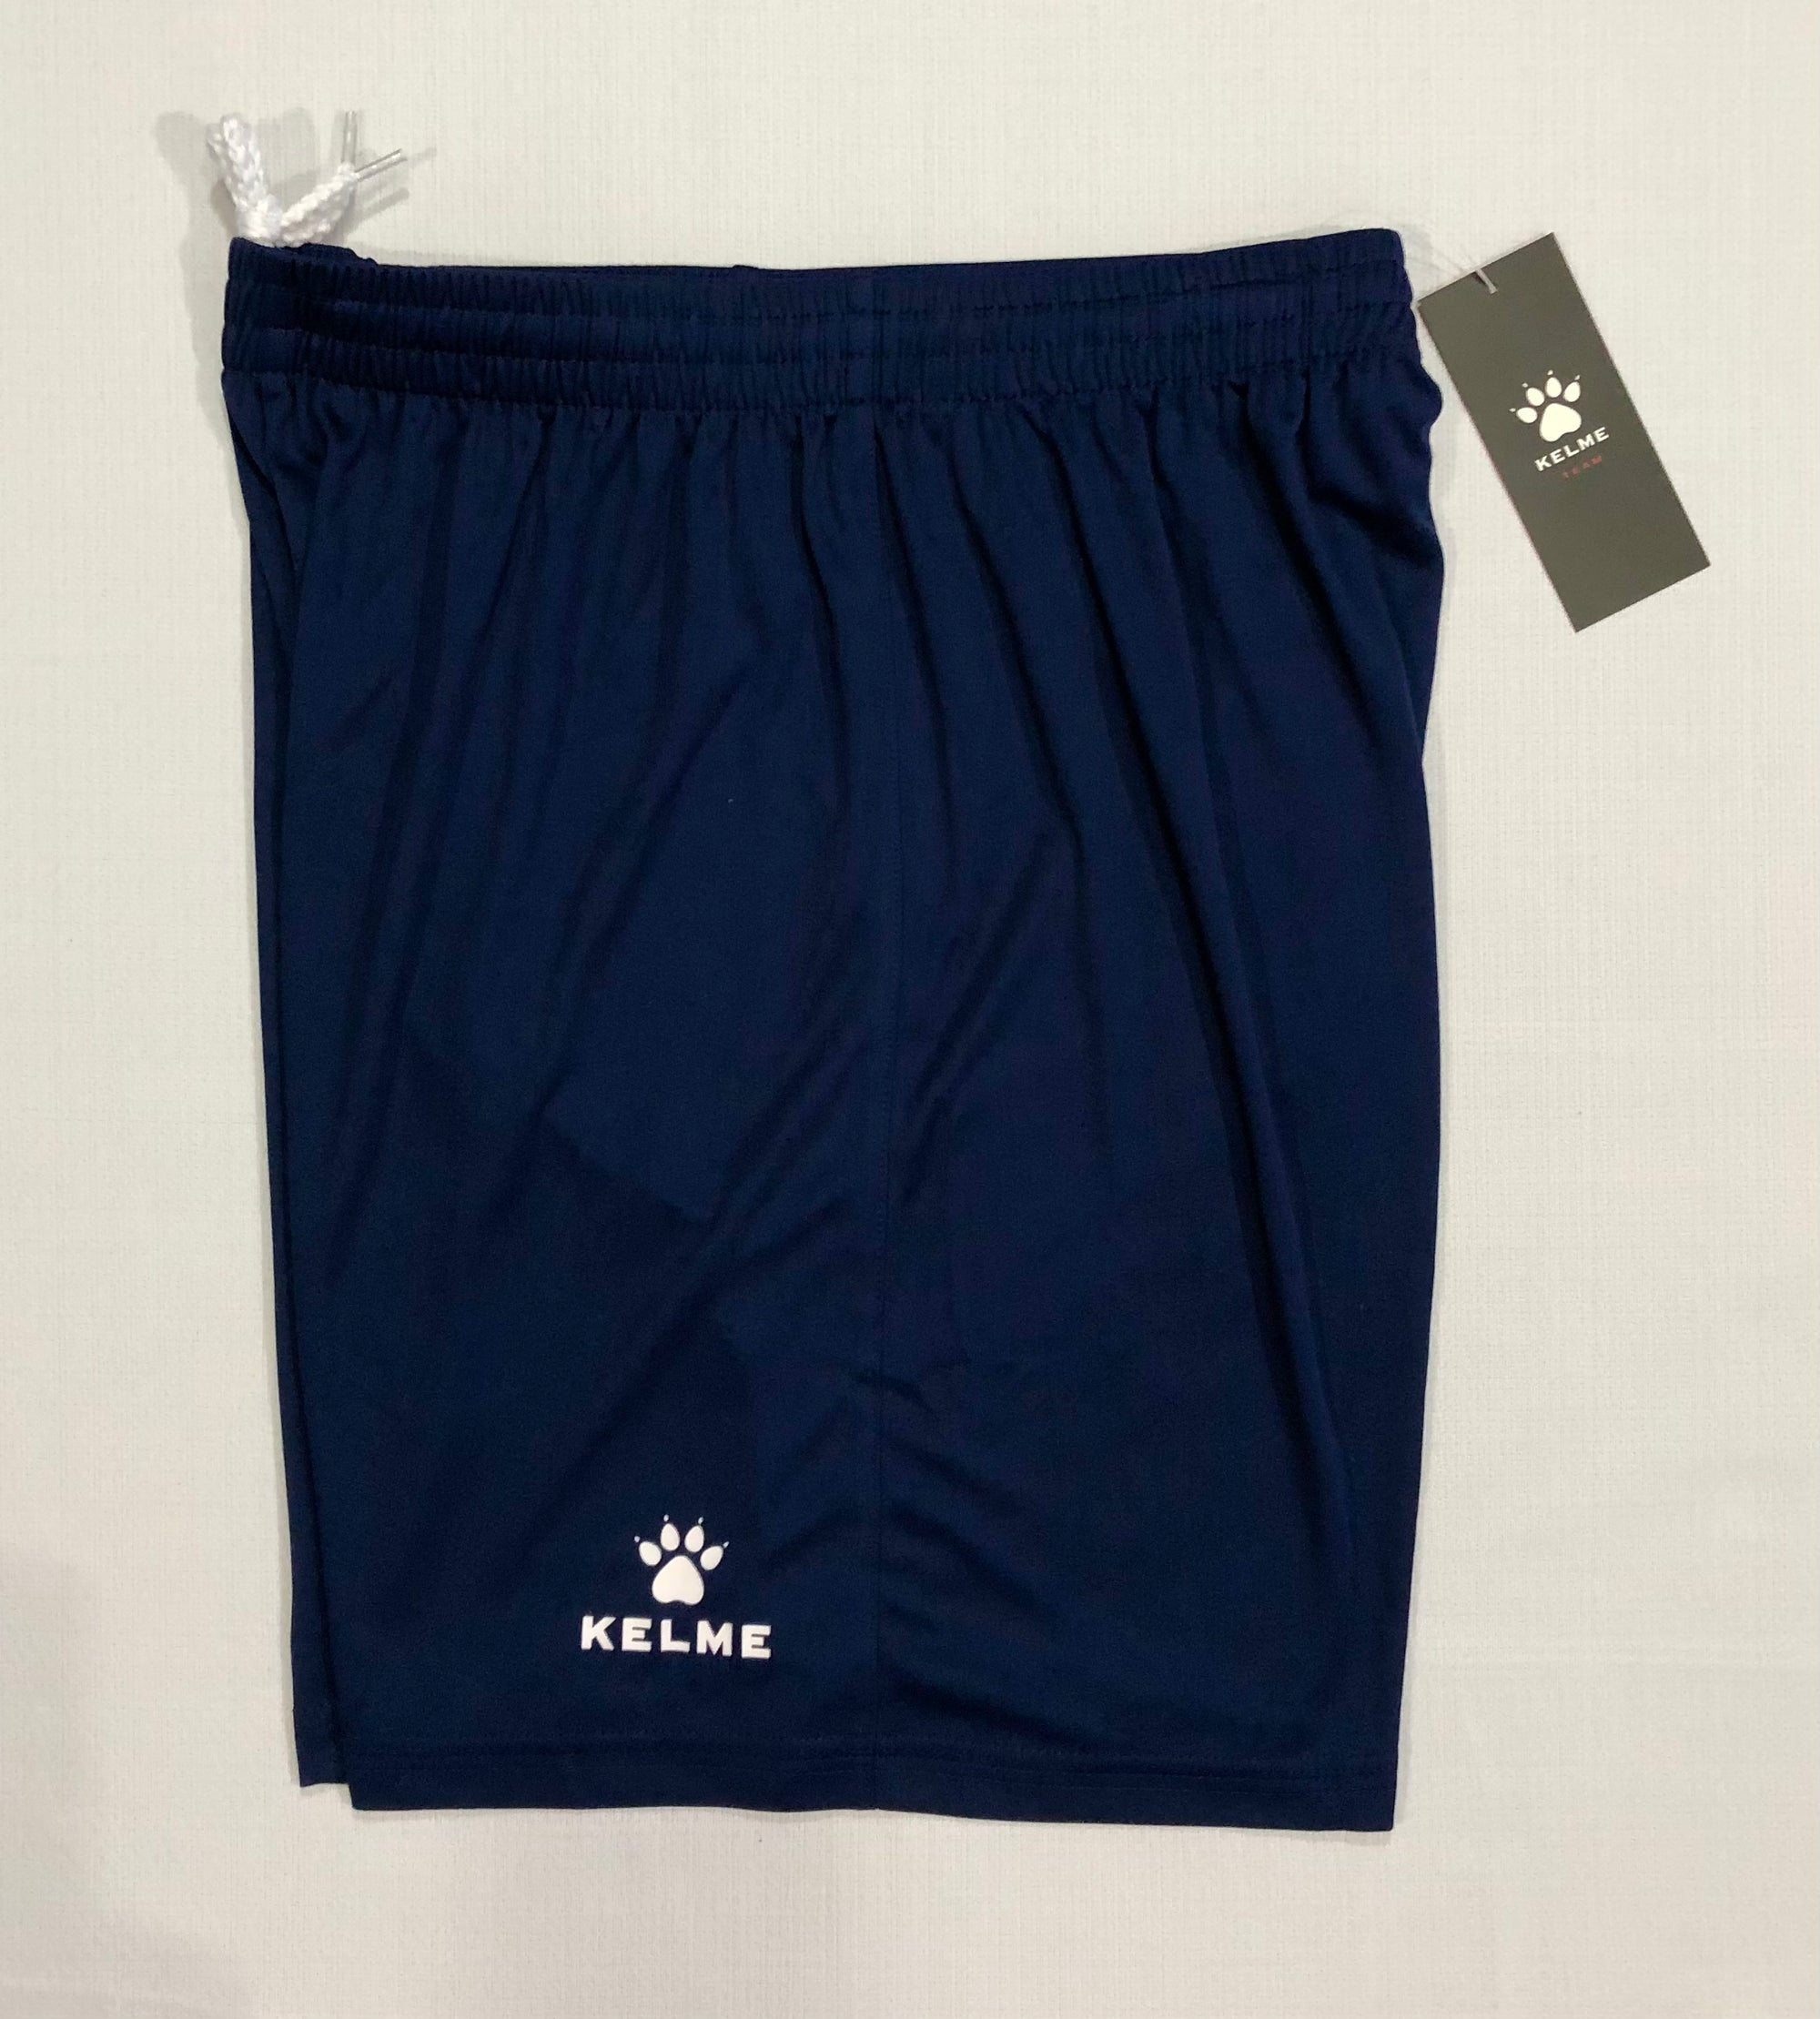 Kelme Adult Short - Navy Blue